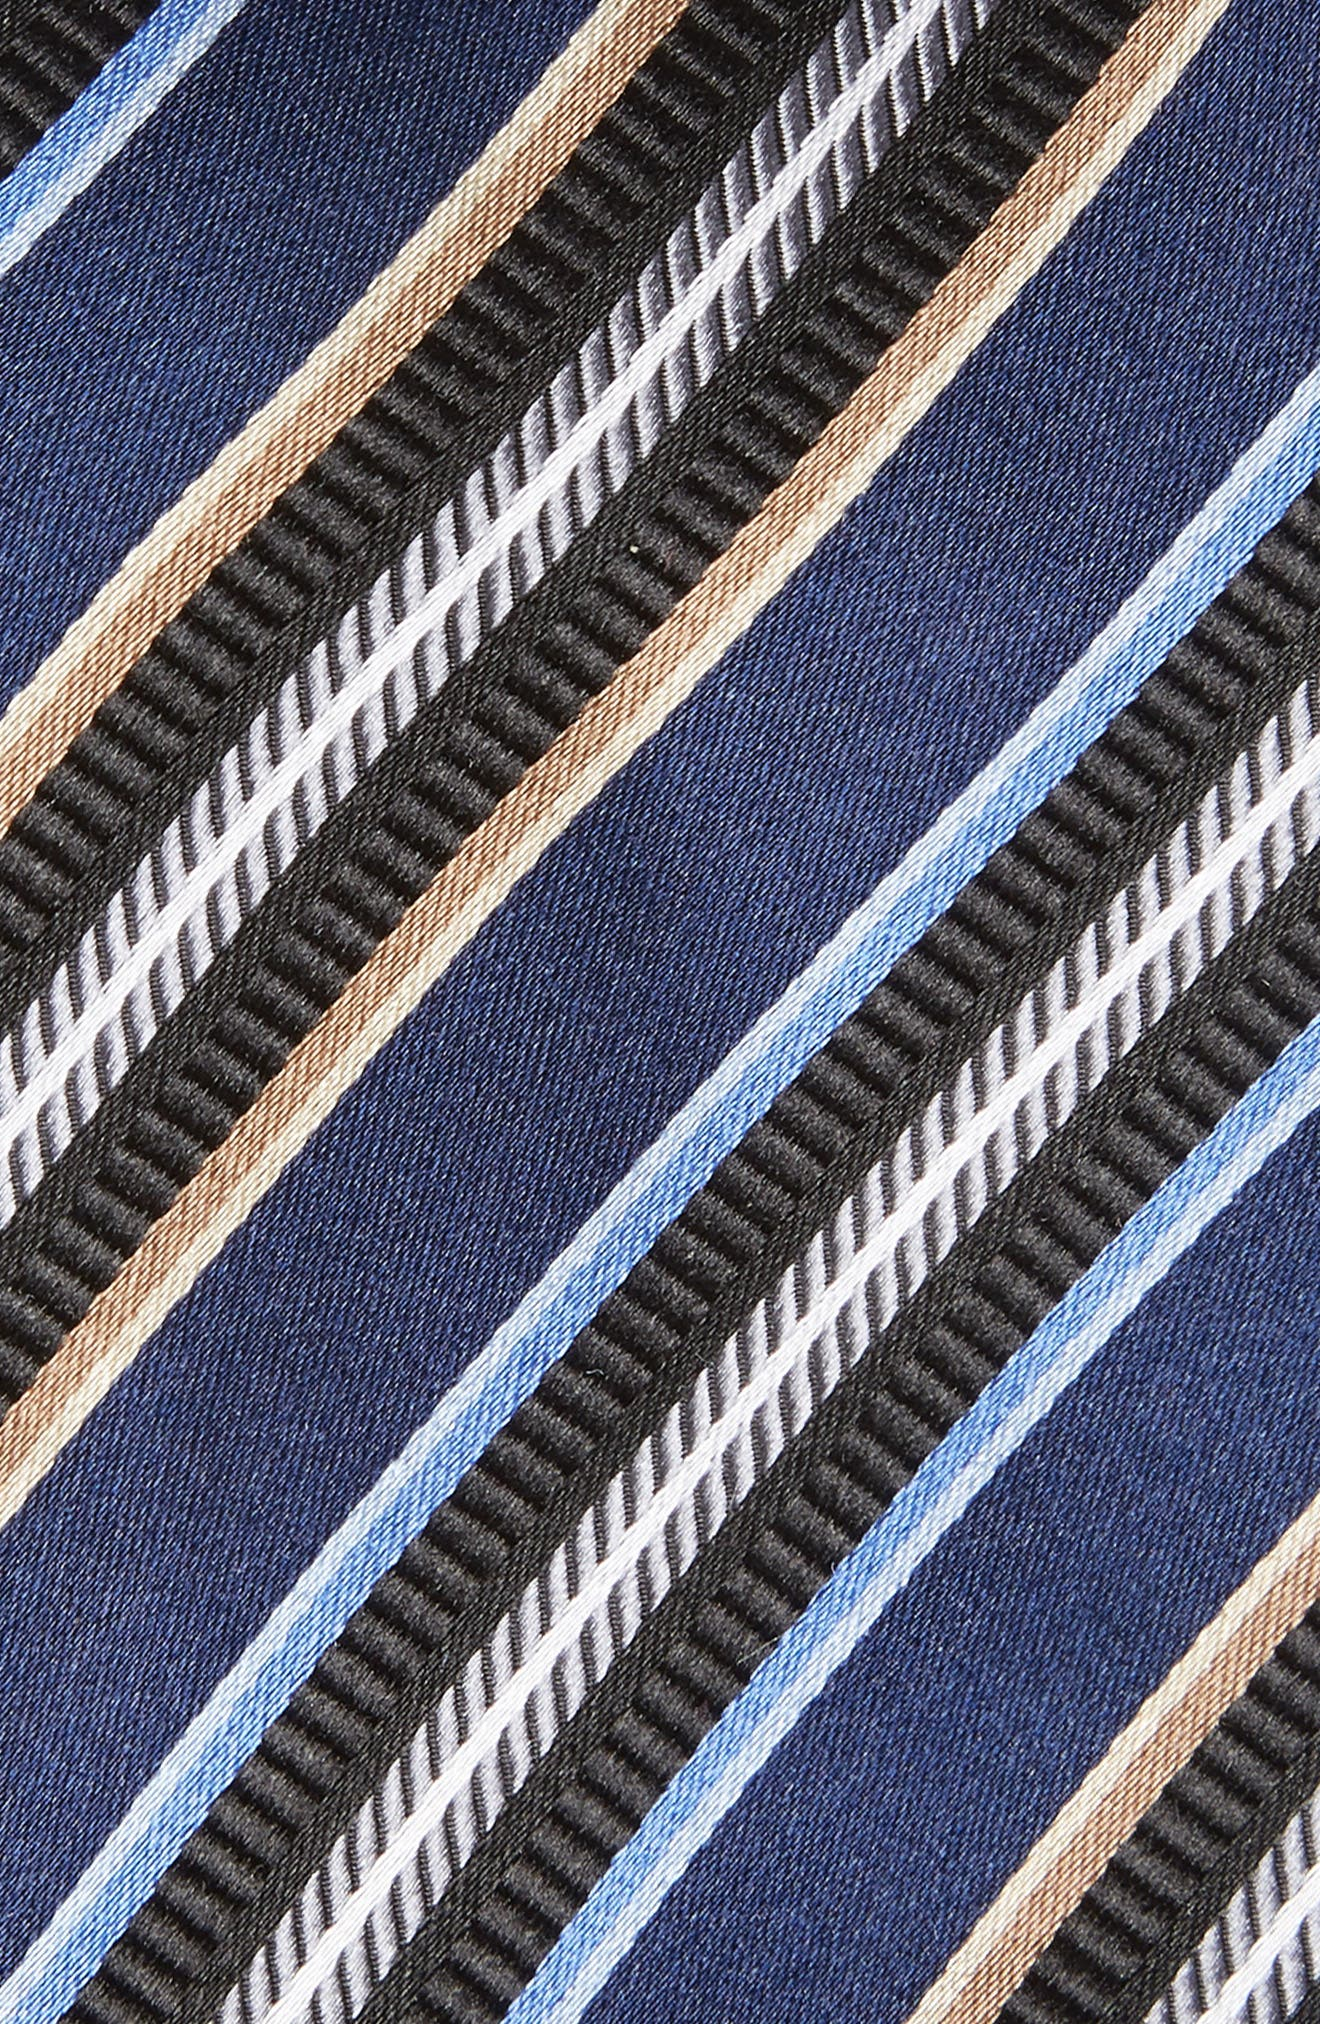 Striped Silk Tie,                             Alternate thumbnail 2, color,                             410